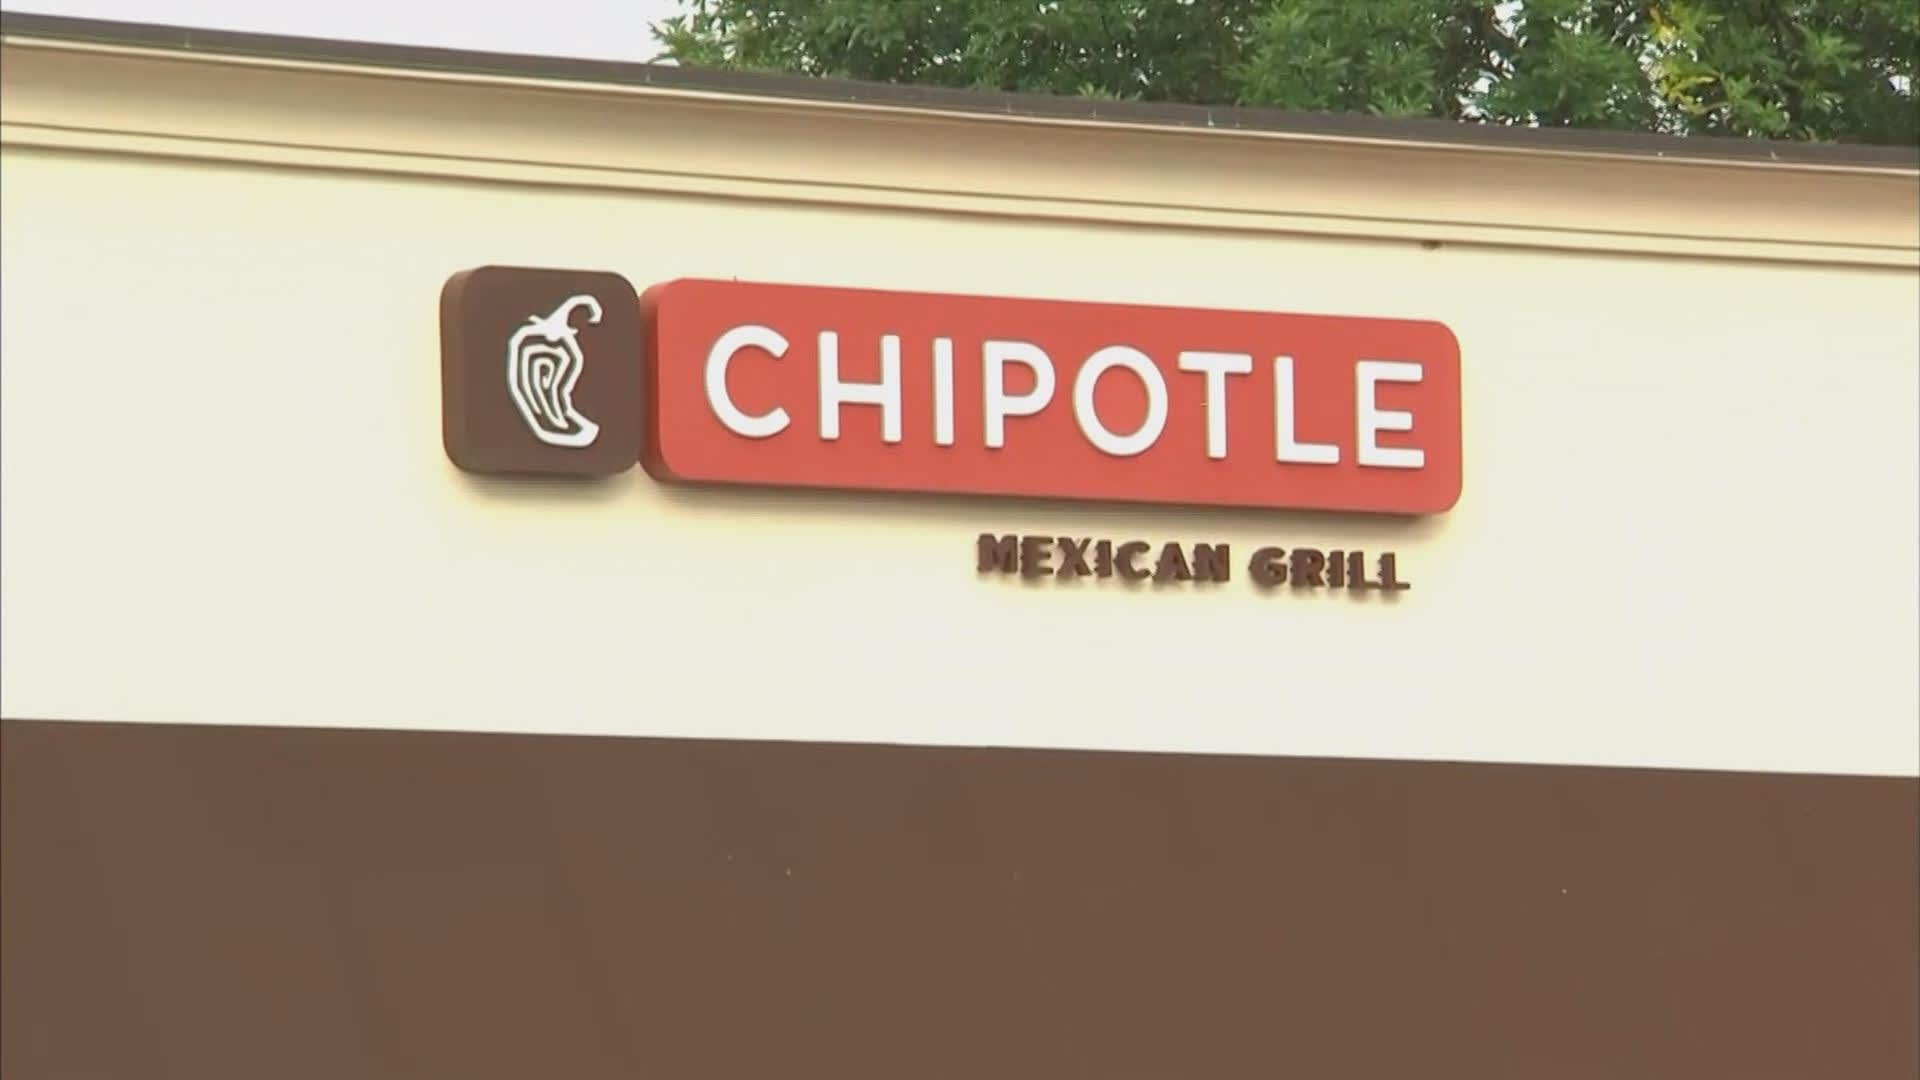 Chipotle's recent norovirus outbreak could be the result of lax sick policy  enforcement